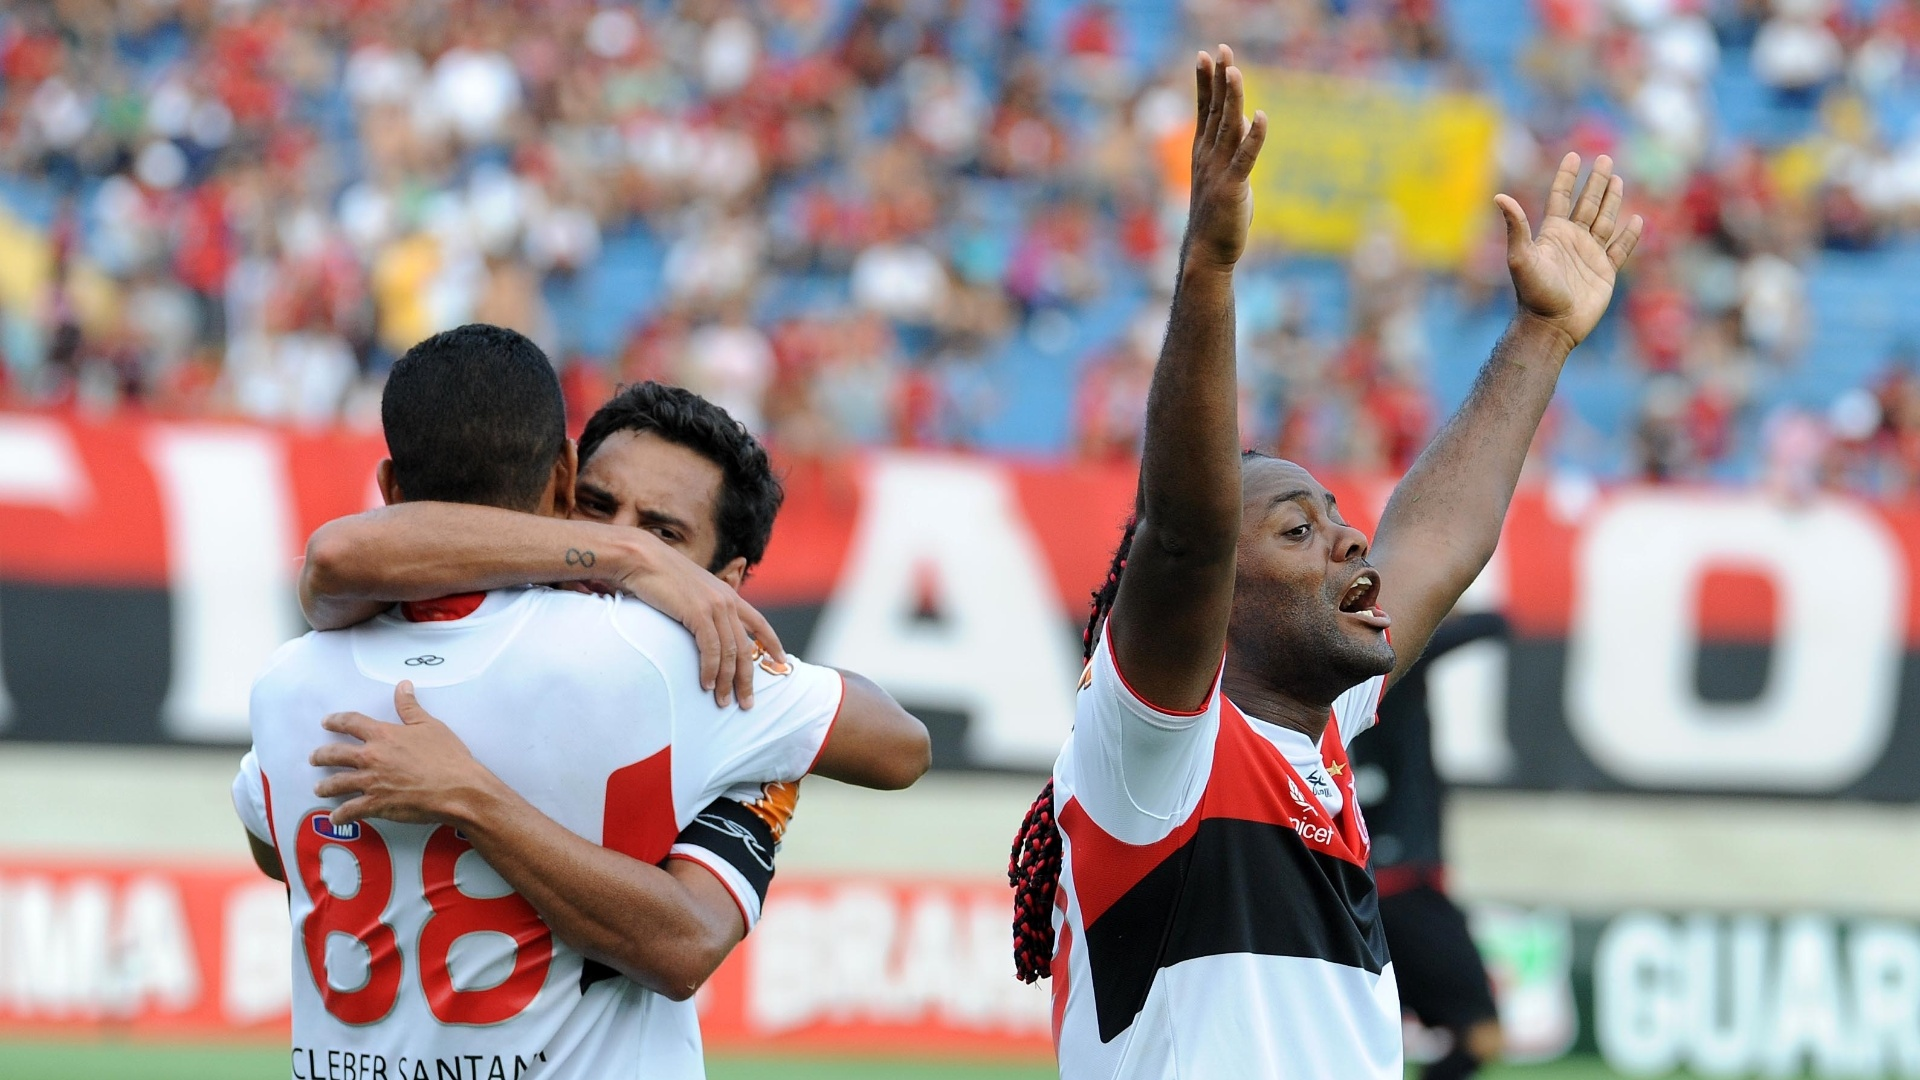 Vgner Love comemora gol marcado por Clber Santana na partida do Flamengo contra o Atltico-GO